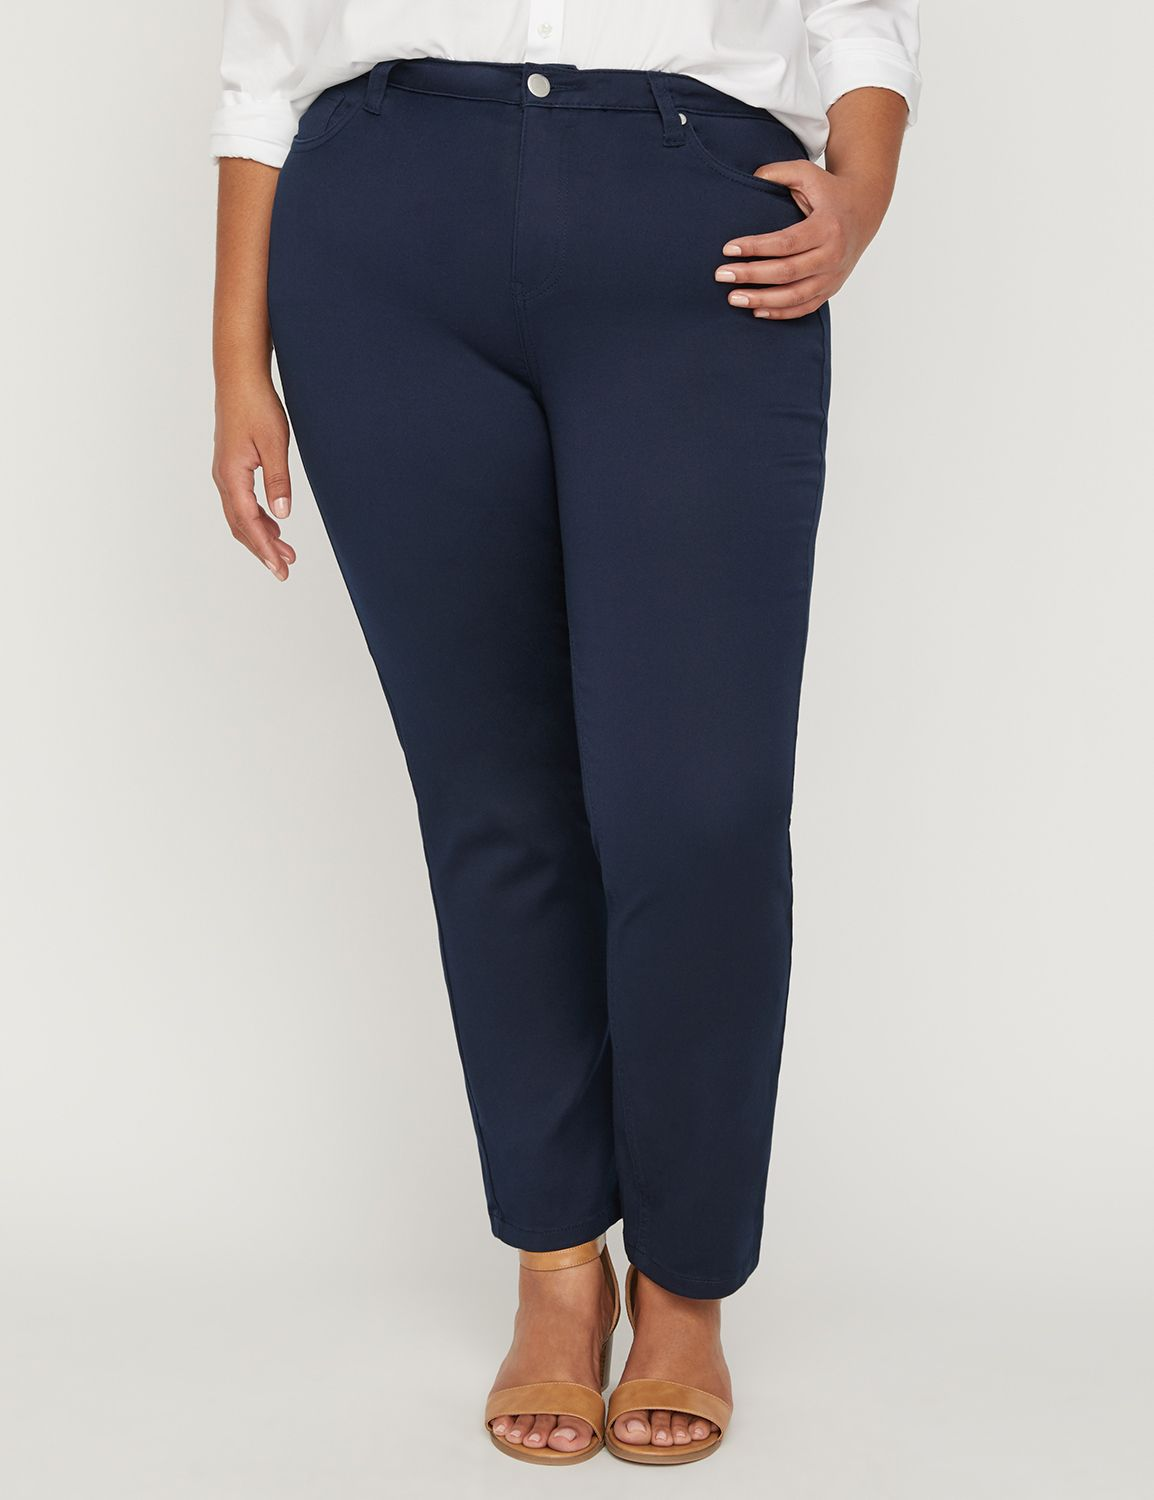 Modern Sateen Stretch Pant Done MP-300083425